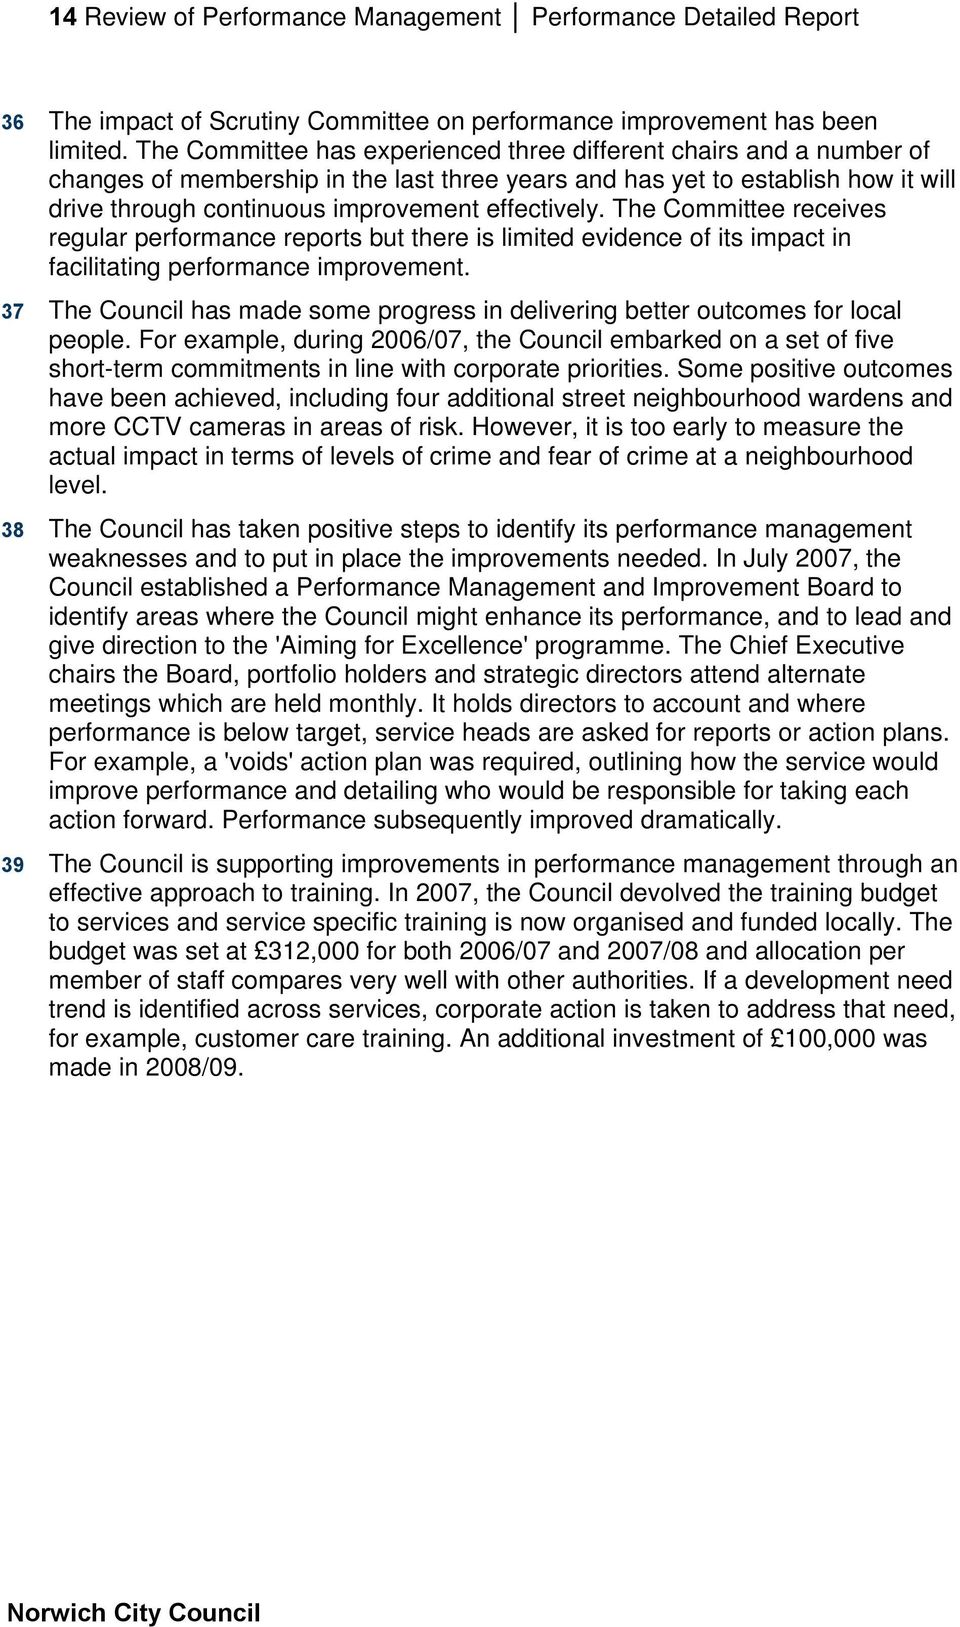 effectively. The Committee receives regular performance reports but there is limited evidence of its impact in facilitating performance improvement.